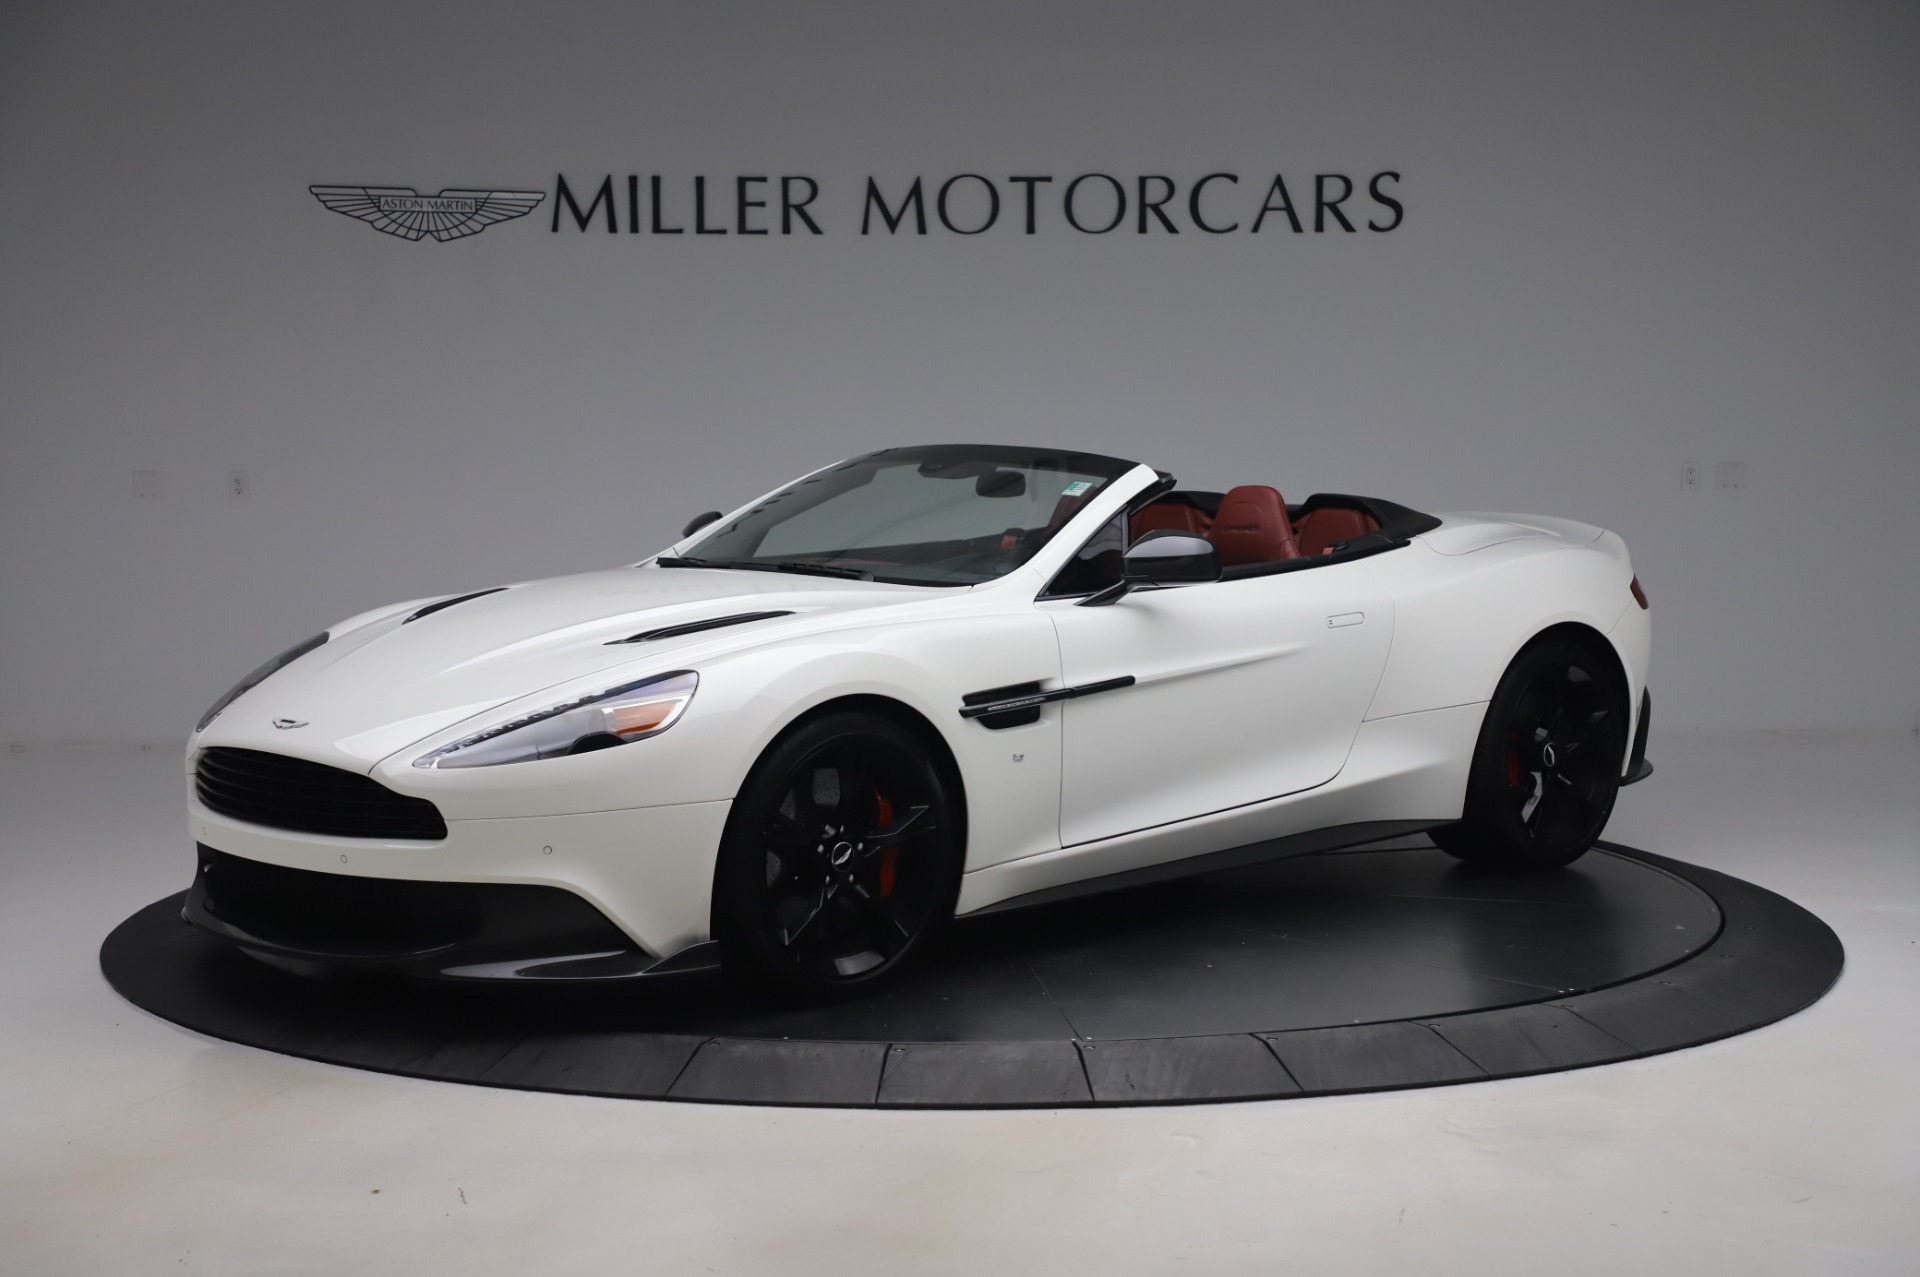 Used 2018 Aston Martin Vanquish S Volante for sale Sold at Bugatti of Greenwich in Greenwich CT 06830 1